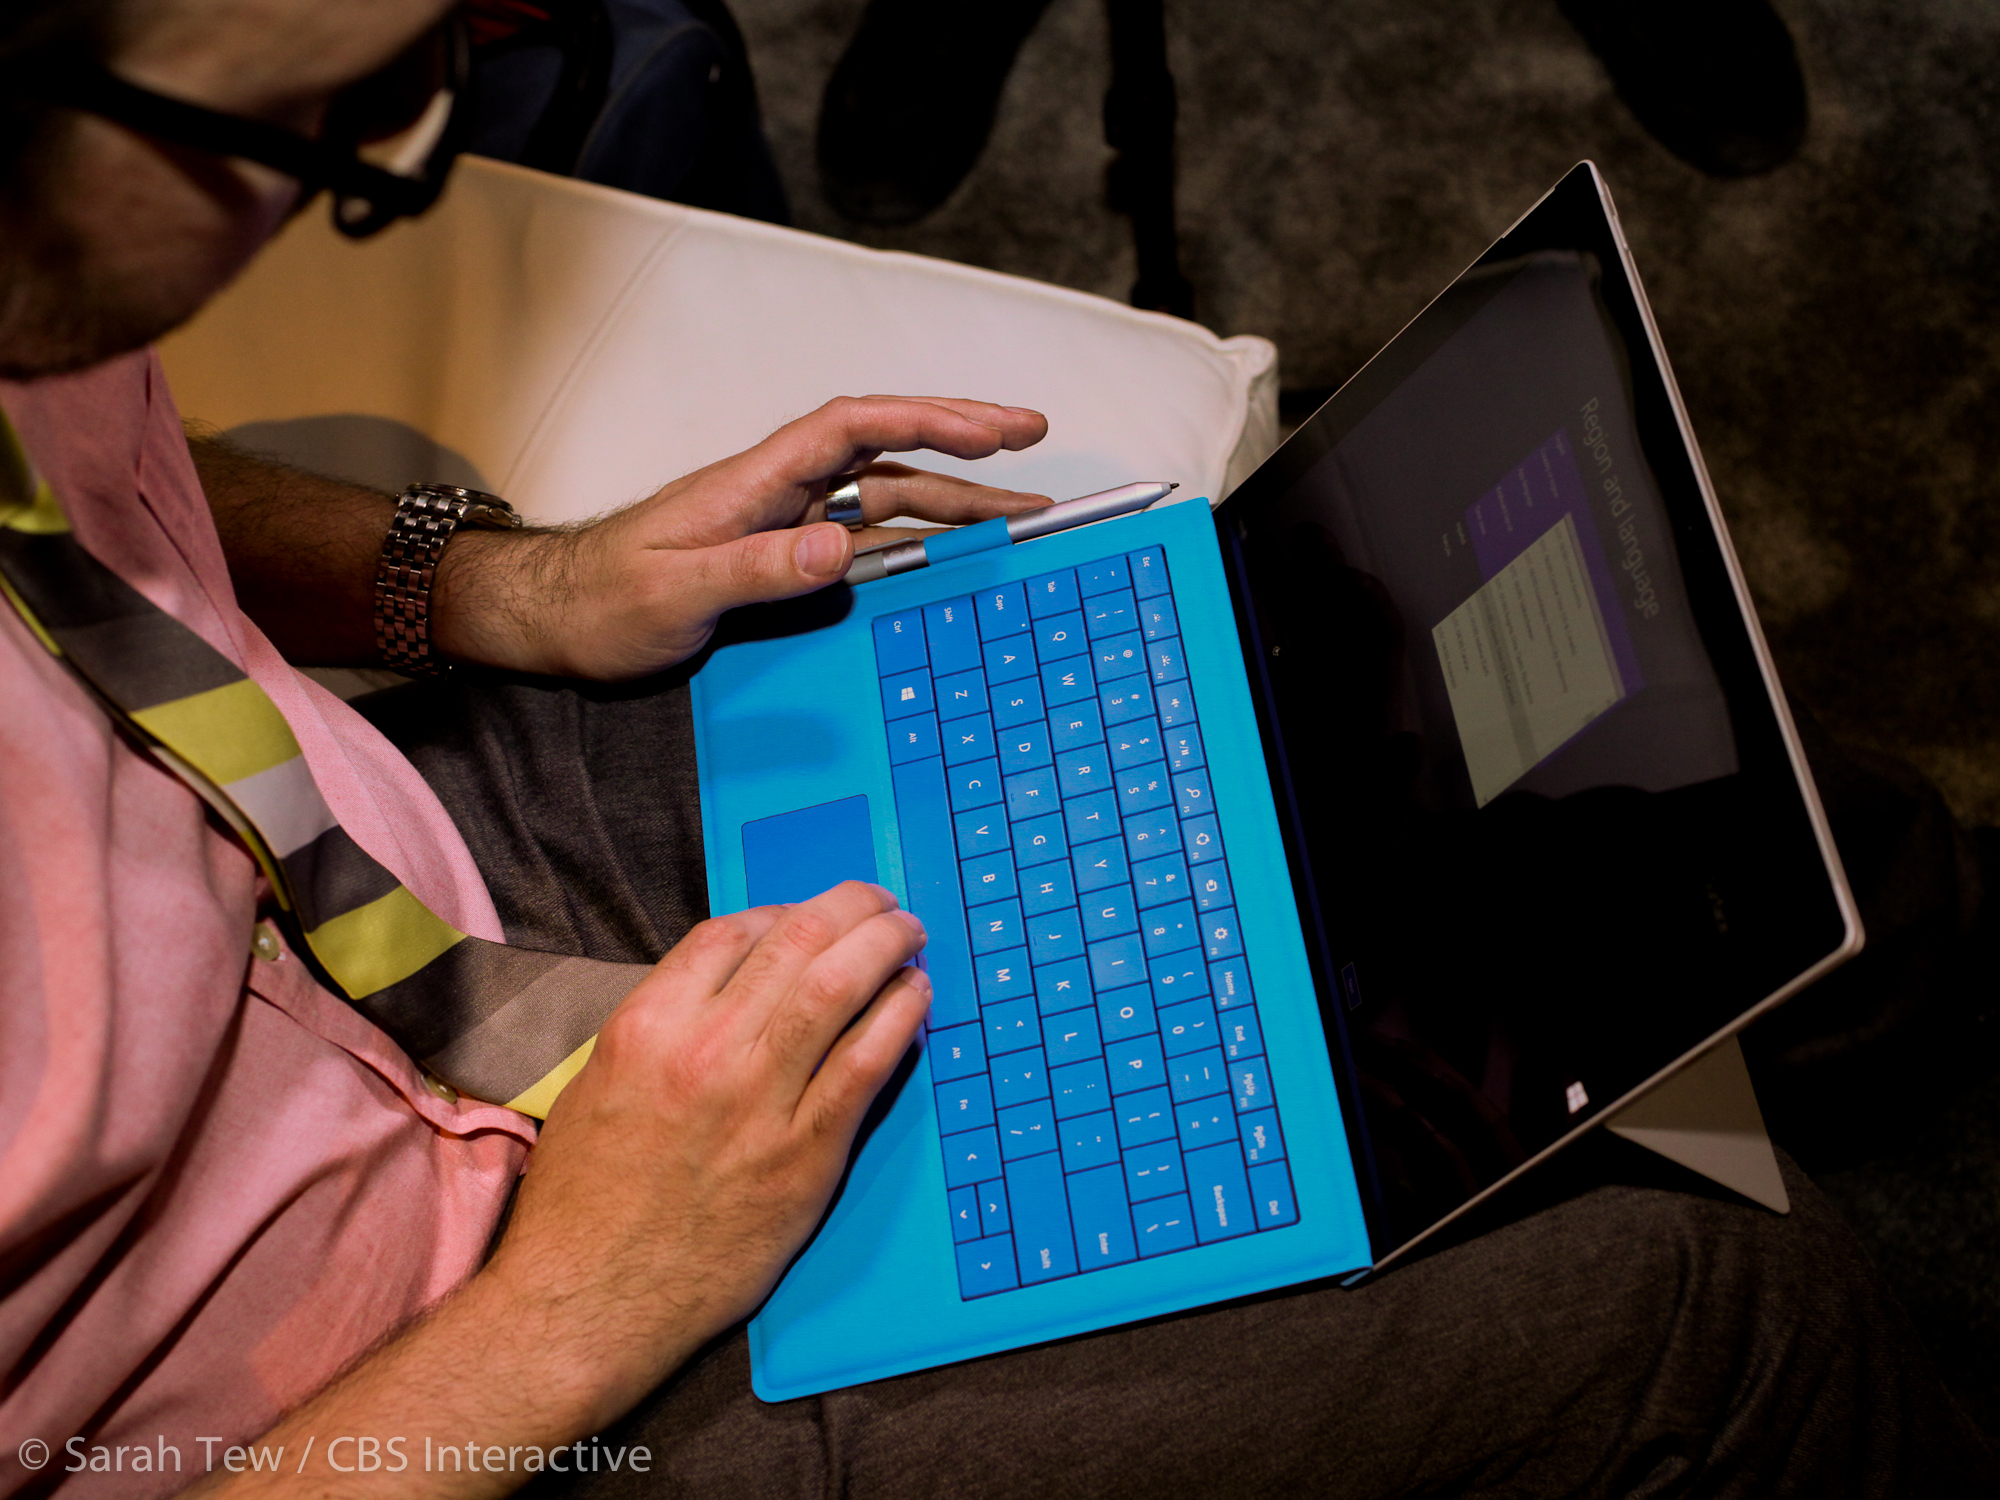 024microsoft-surface-pro-3-product-photos.jpg